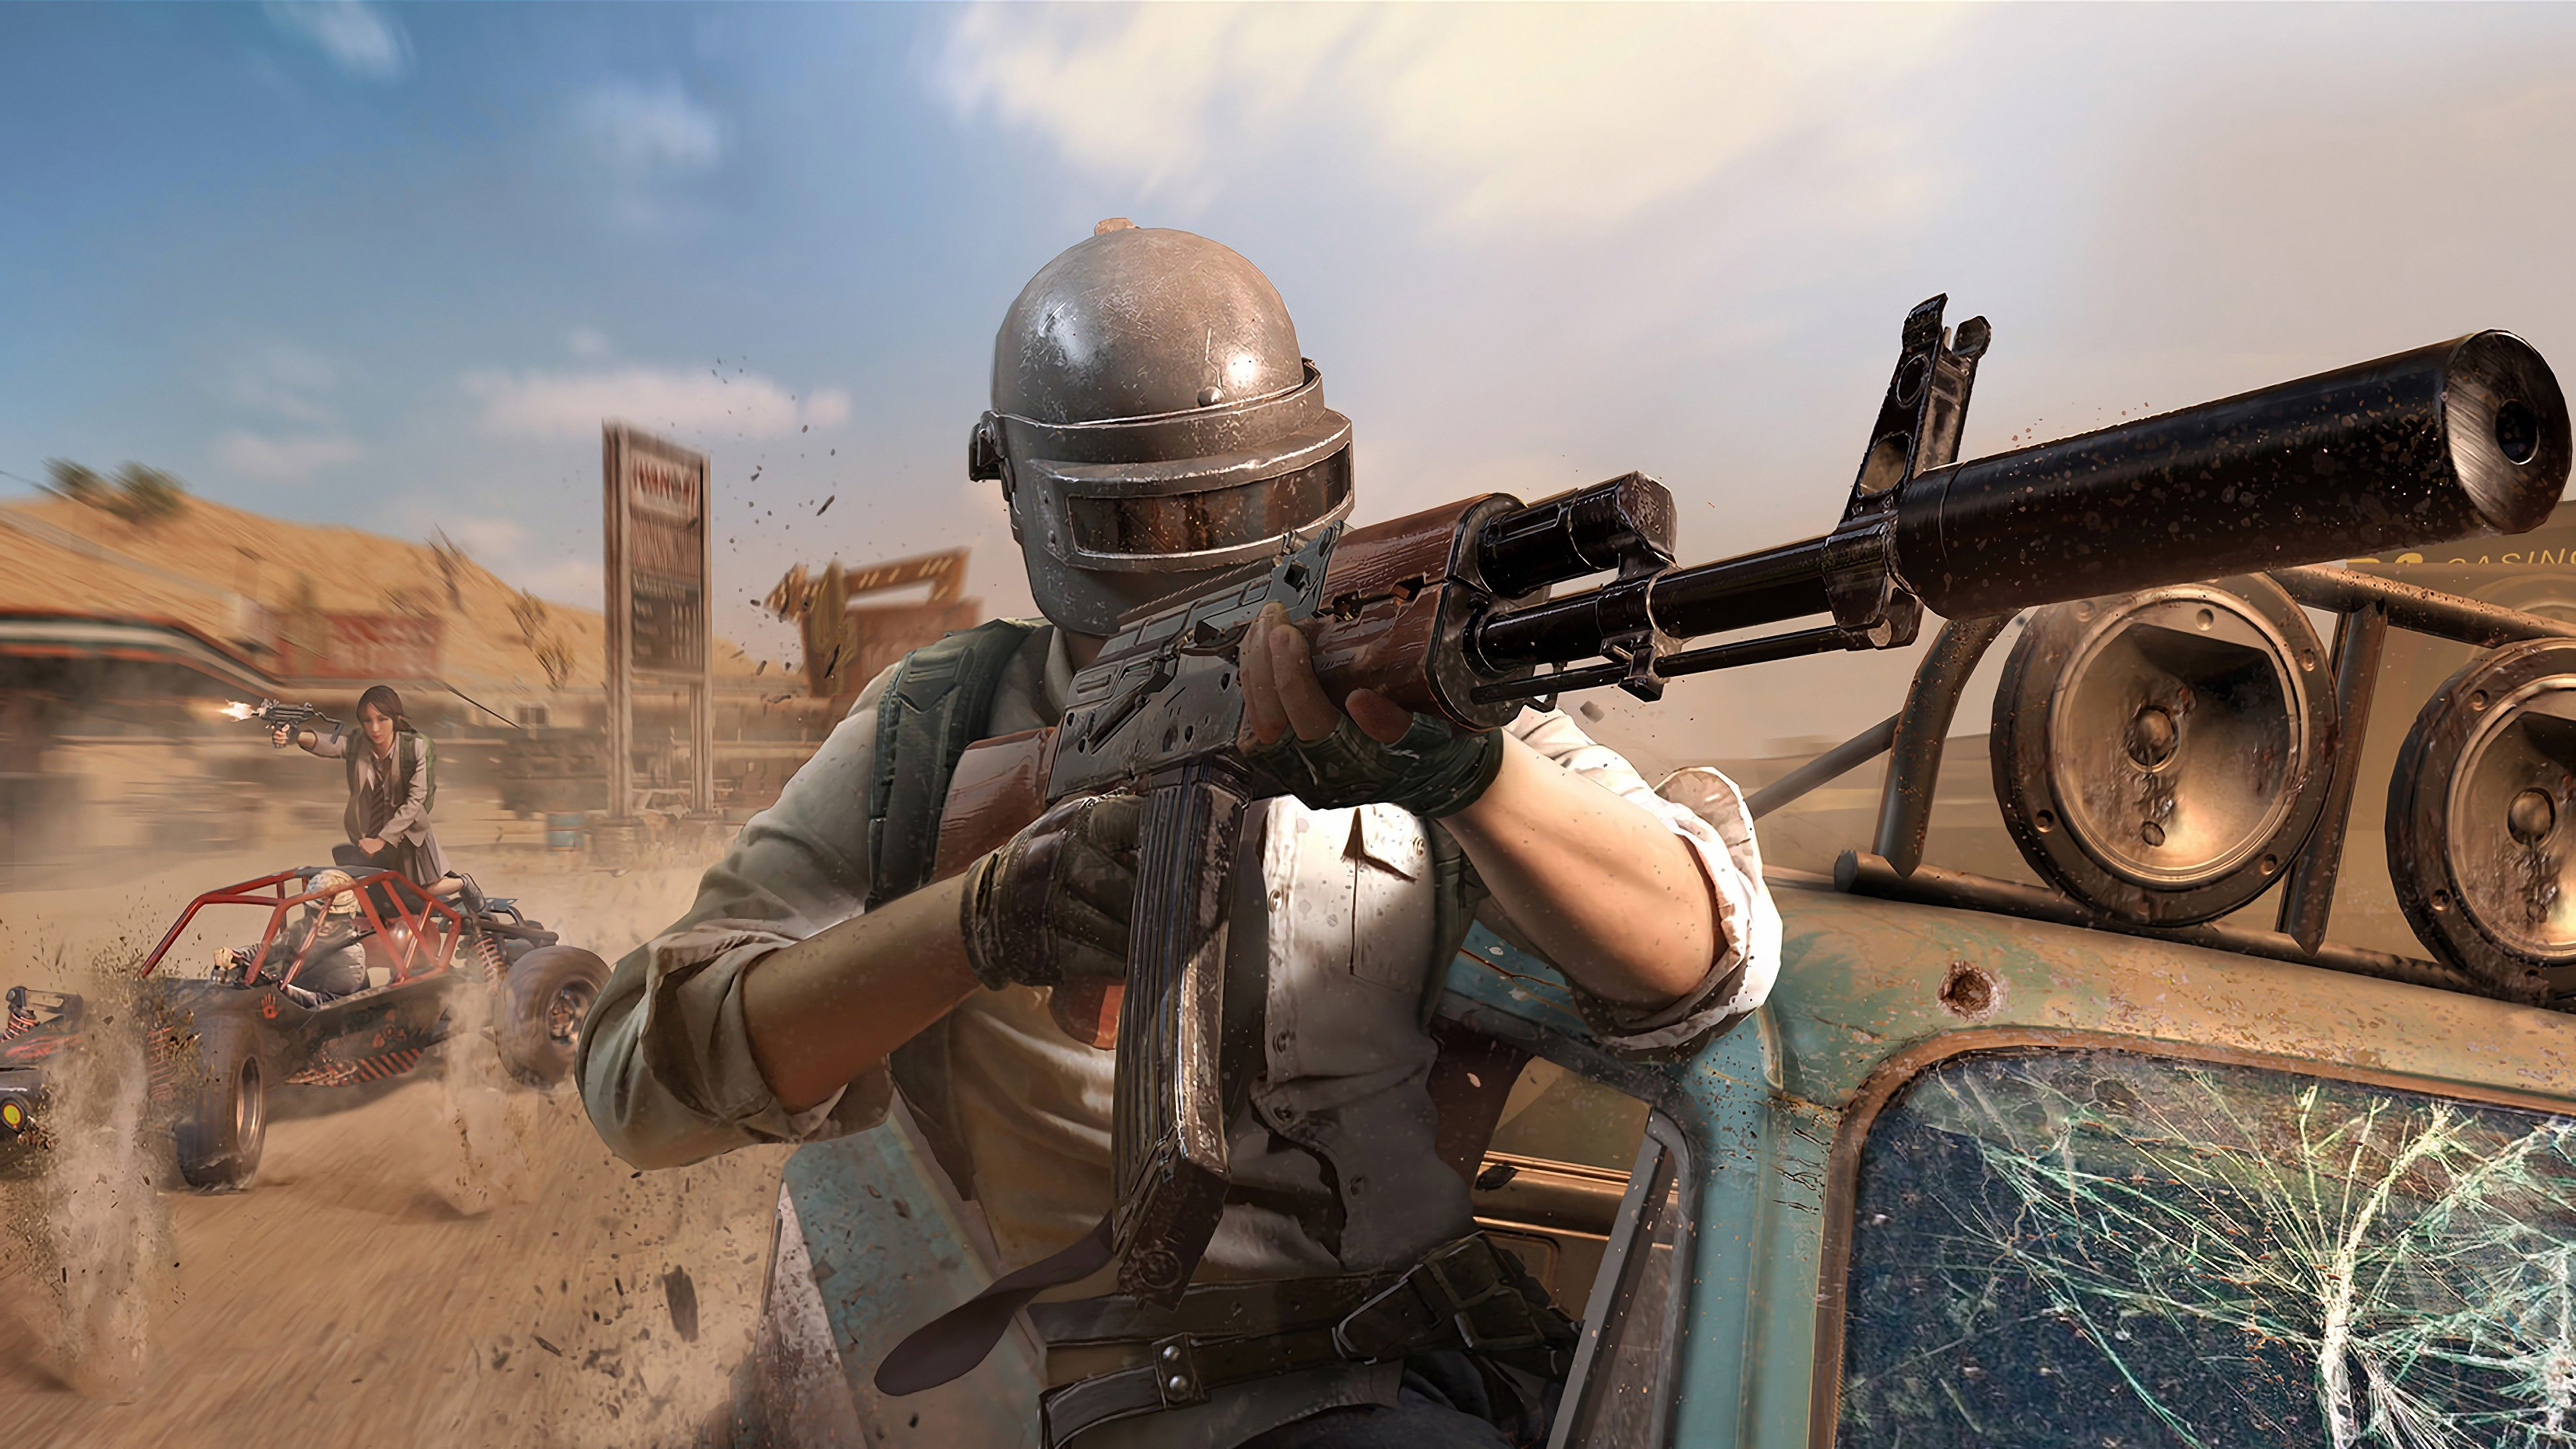 PUBG players have discovered that the game's framerate